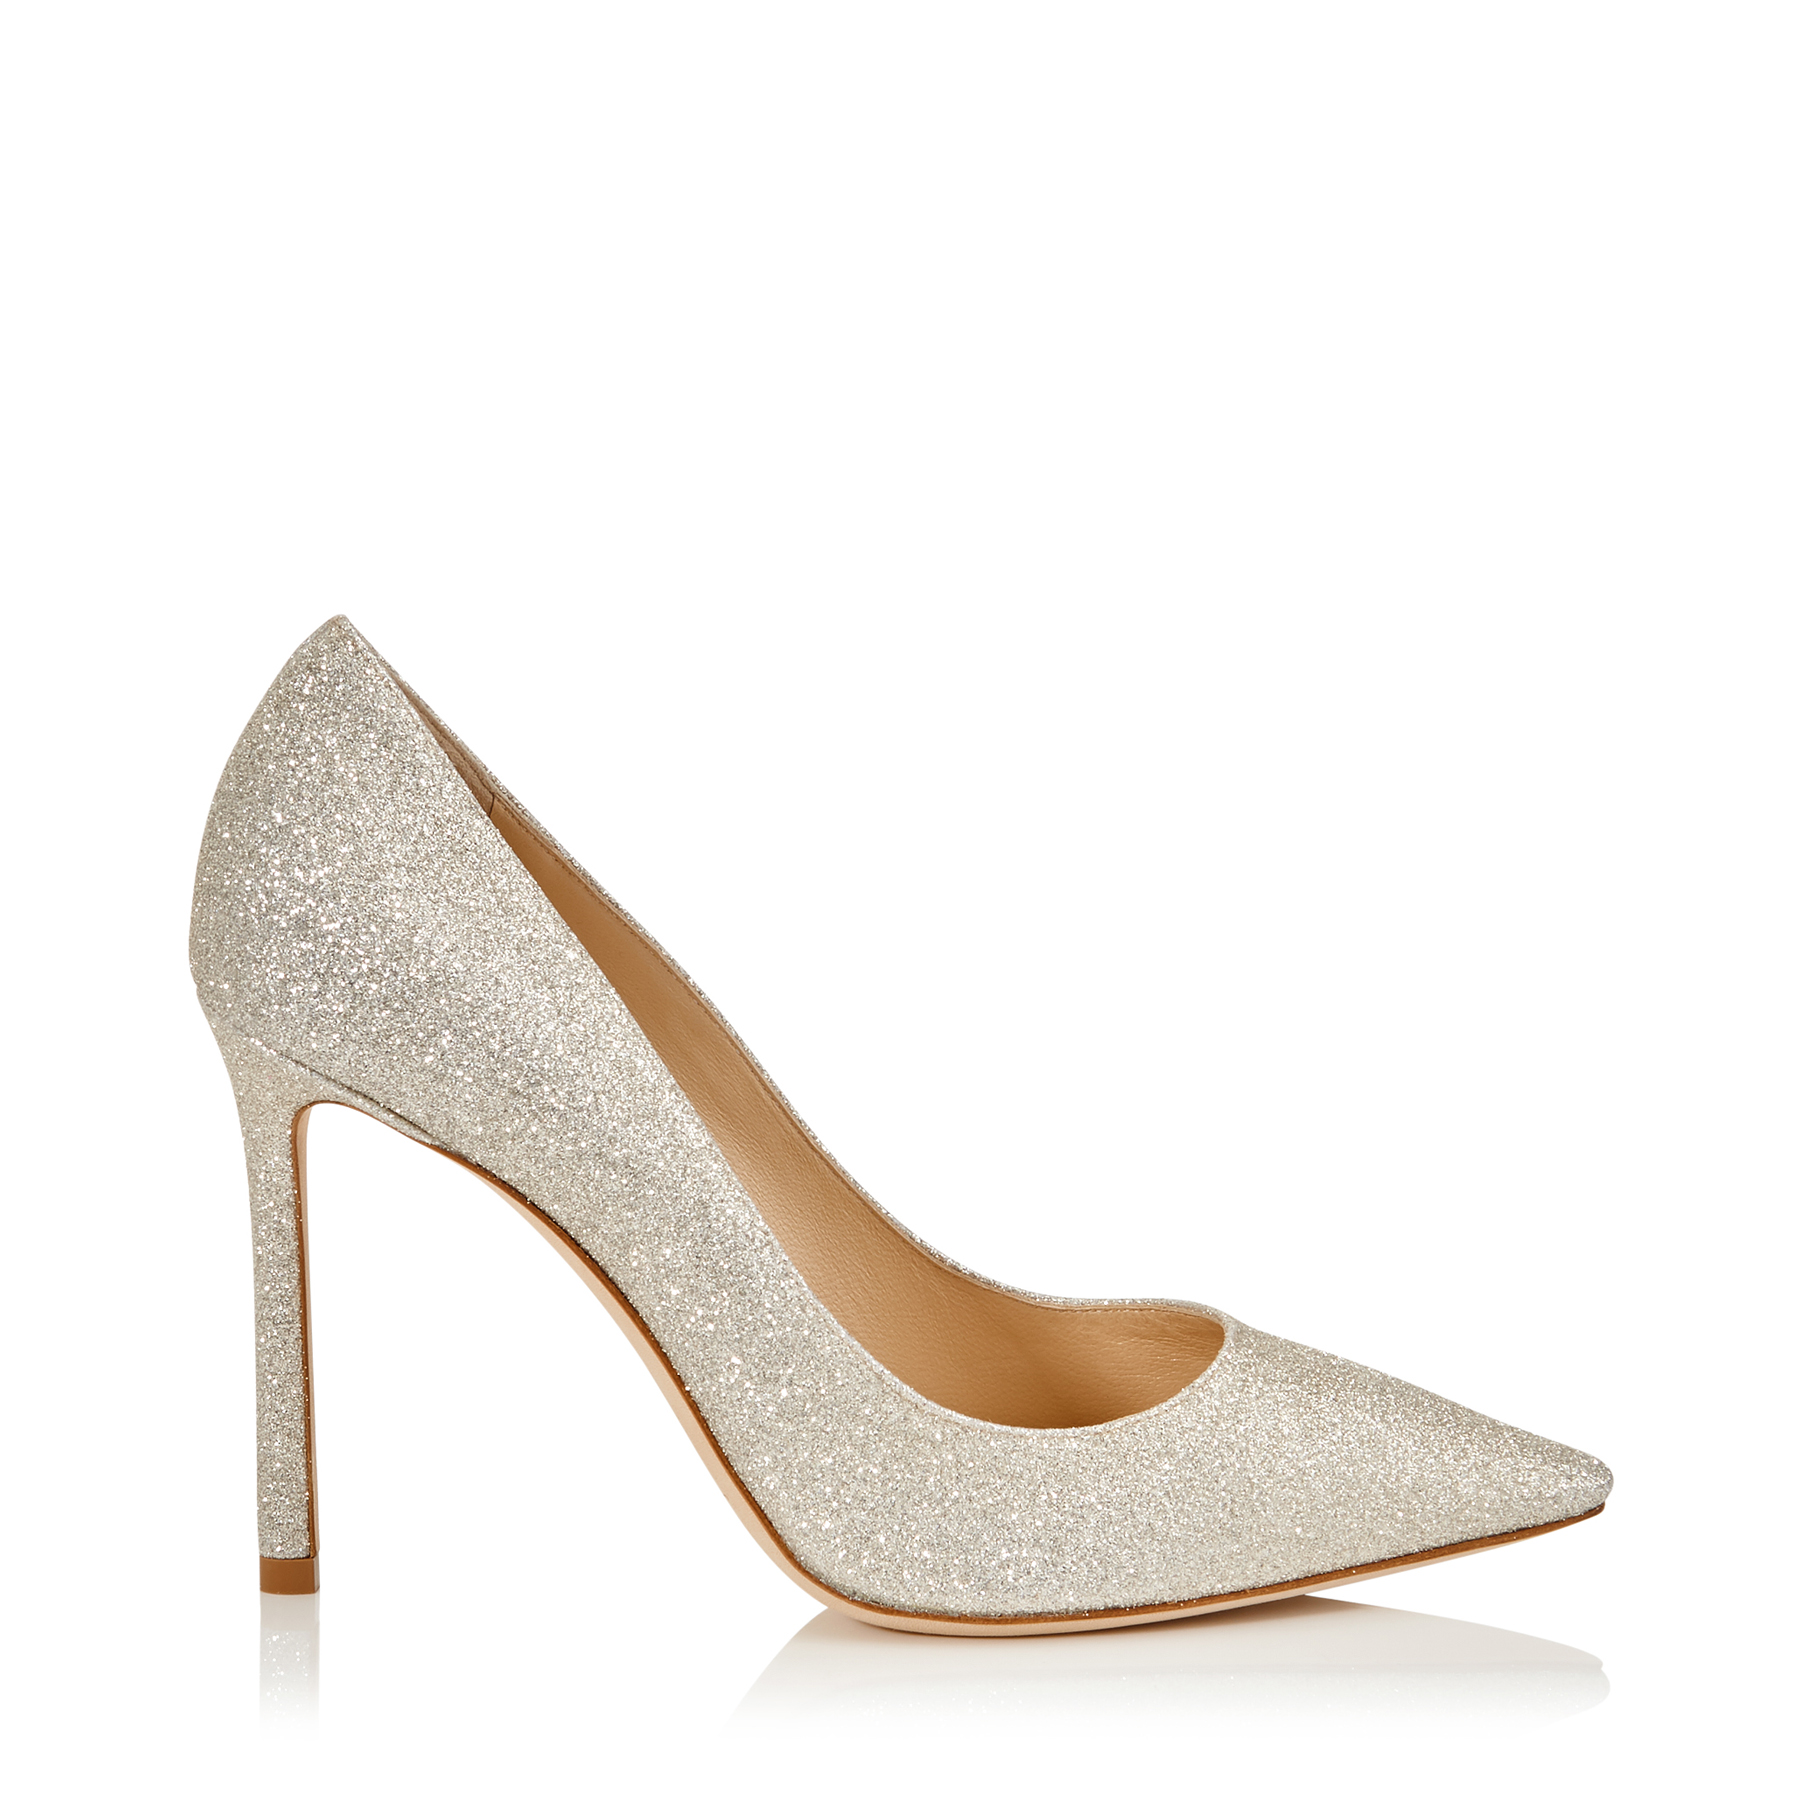 ROMY 100 Platinum Ice Dusty Glitter Pointy Toe Pumps by Jimmy Choo